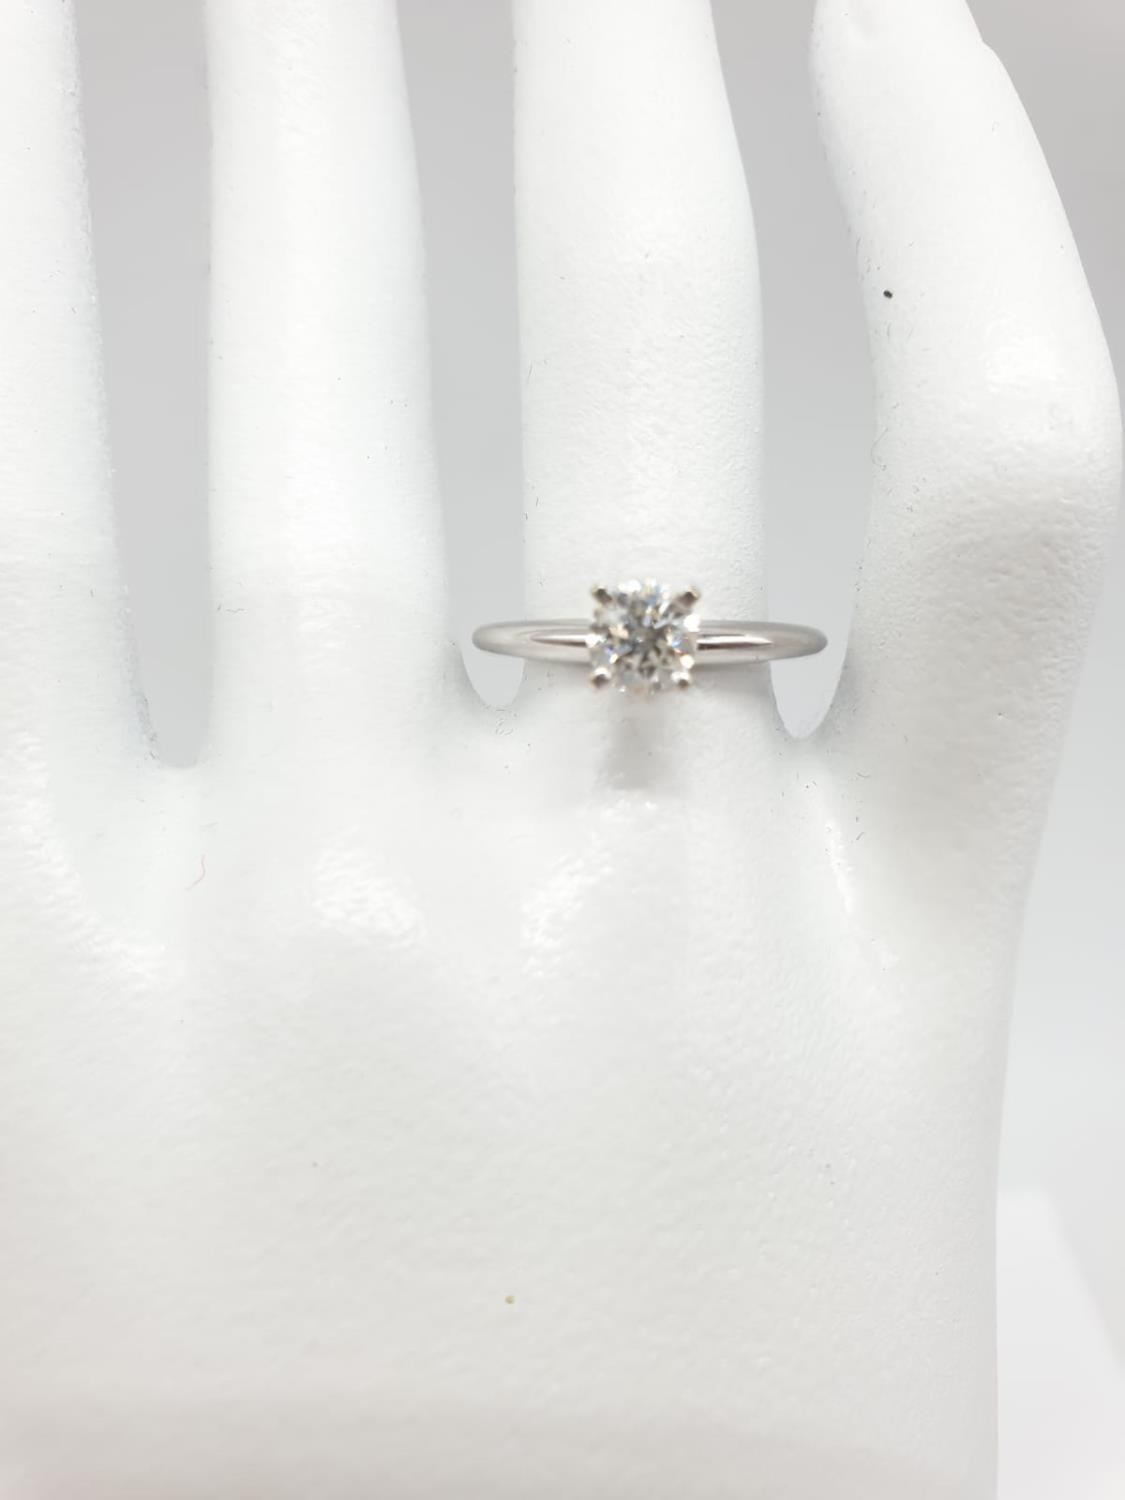 14ct white gold with 0.56ct diamond solitaire ring (round brilliant cut, colour H, clarity SI1 - Image 3 of 18